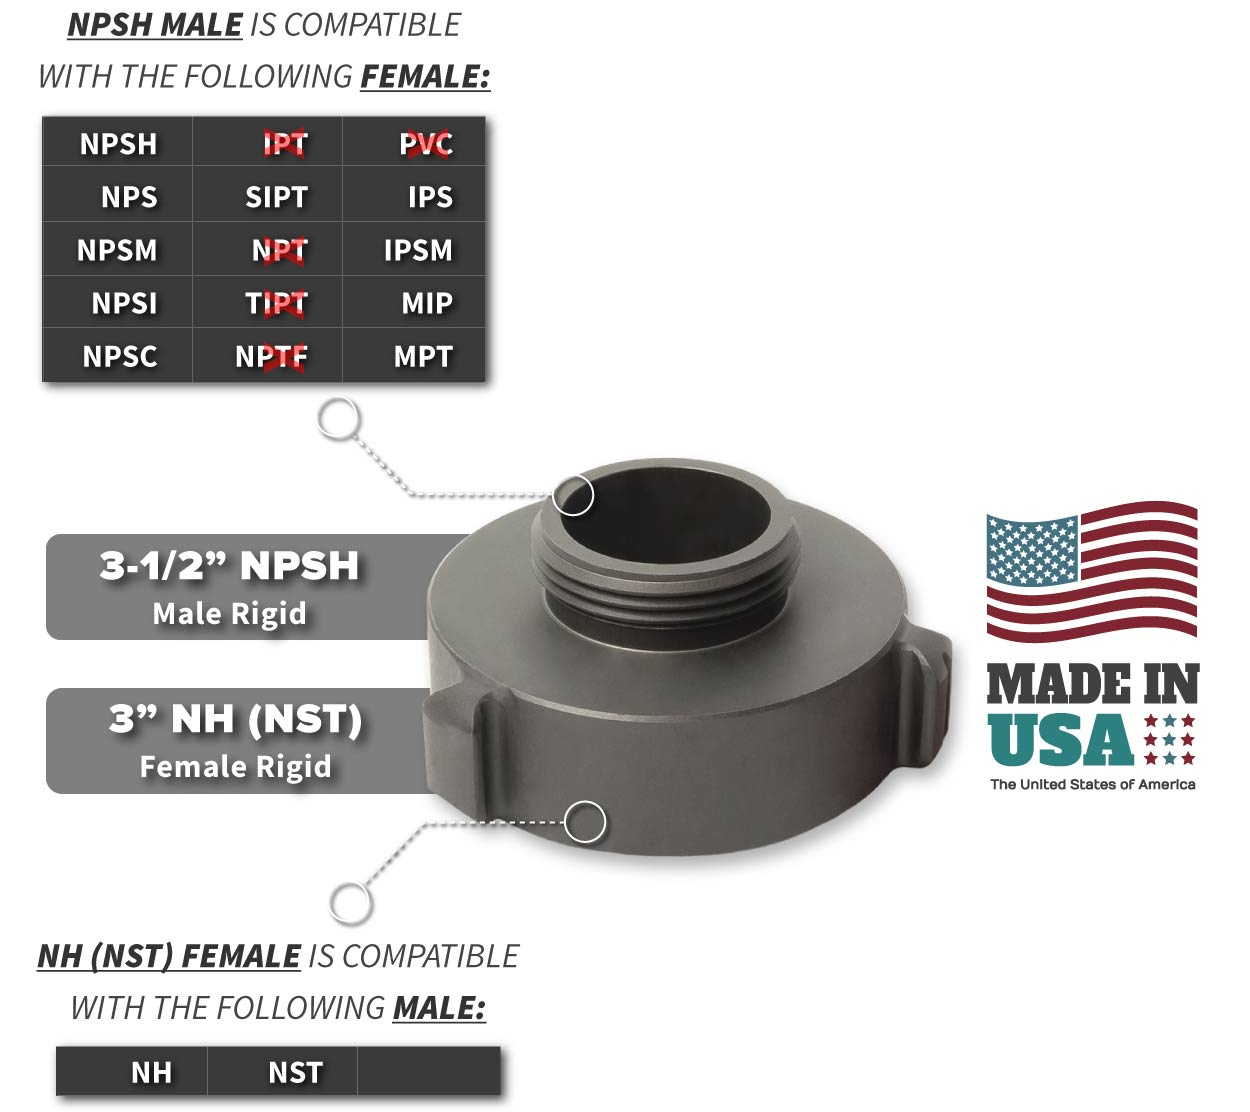 3 Inch NH-NST Female x 3.5 Inch NPSH Male Compatibility Thread Chart